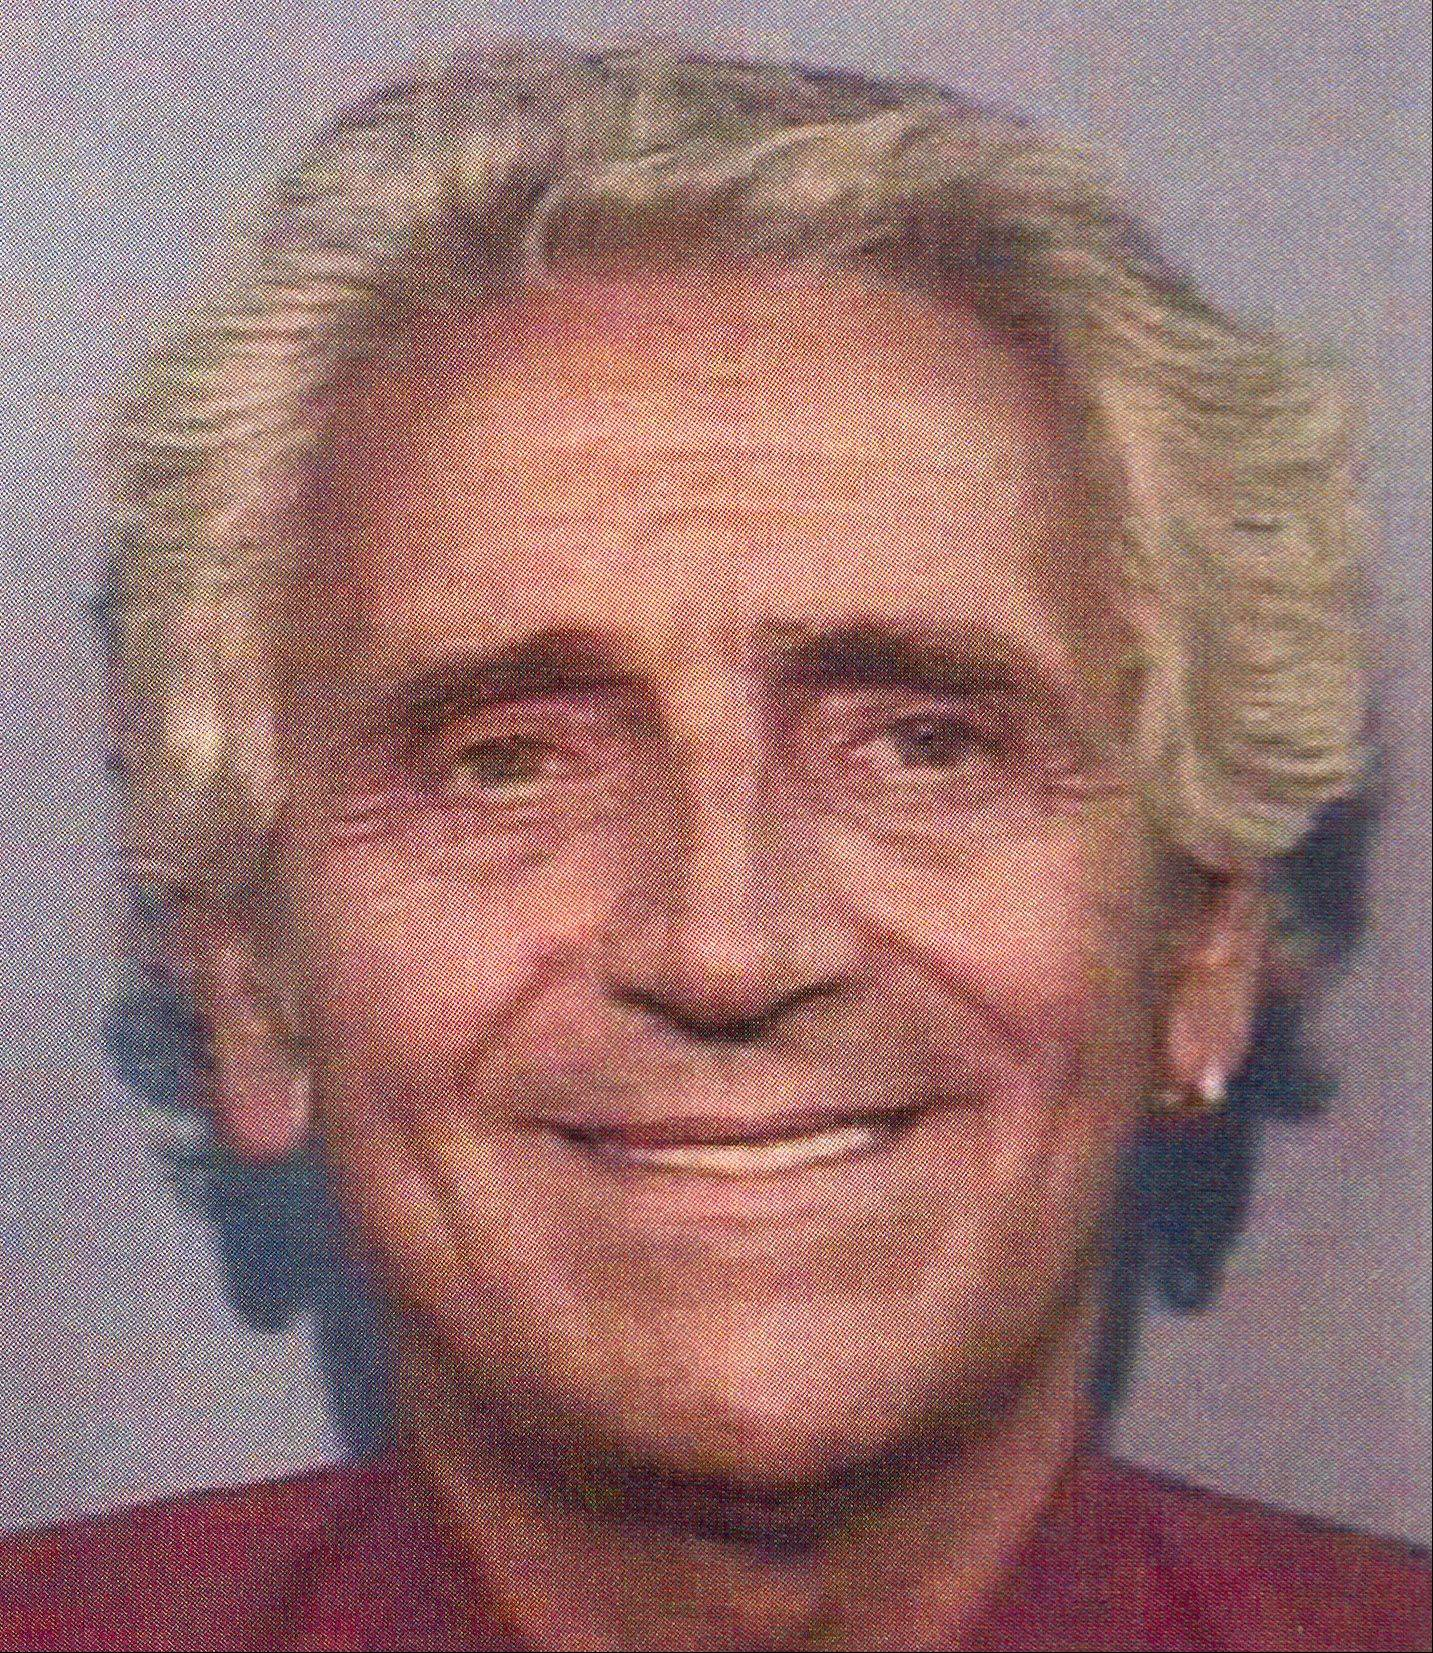 Nickolas Romano, 71, and Gloria Romano, 65, of unincorporated McHenry County near Cary, were found slain in their home in 2006.